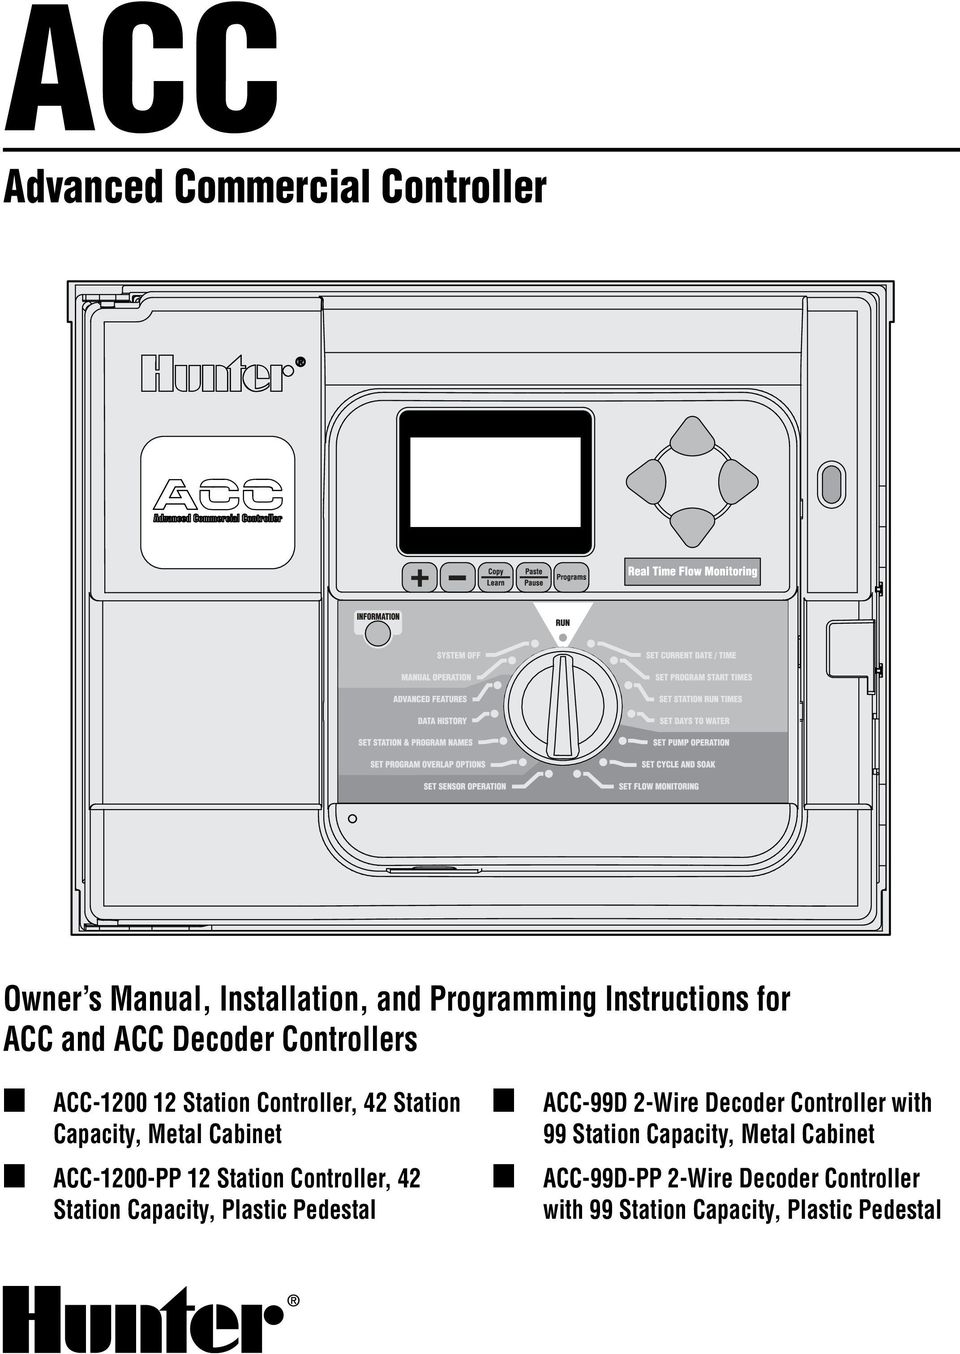 hight resolution of station controller 42 station capacity plastic pedestal acc 99d 2 wire decoder